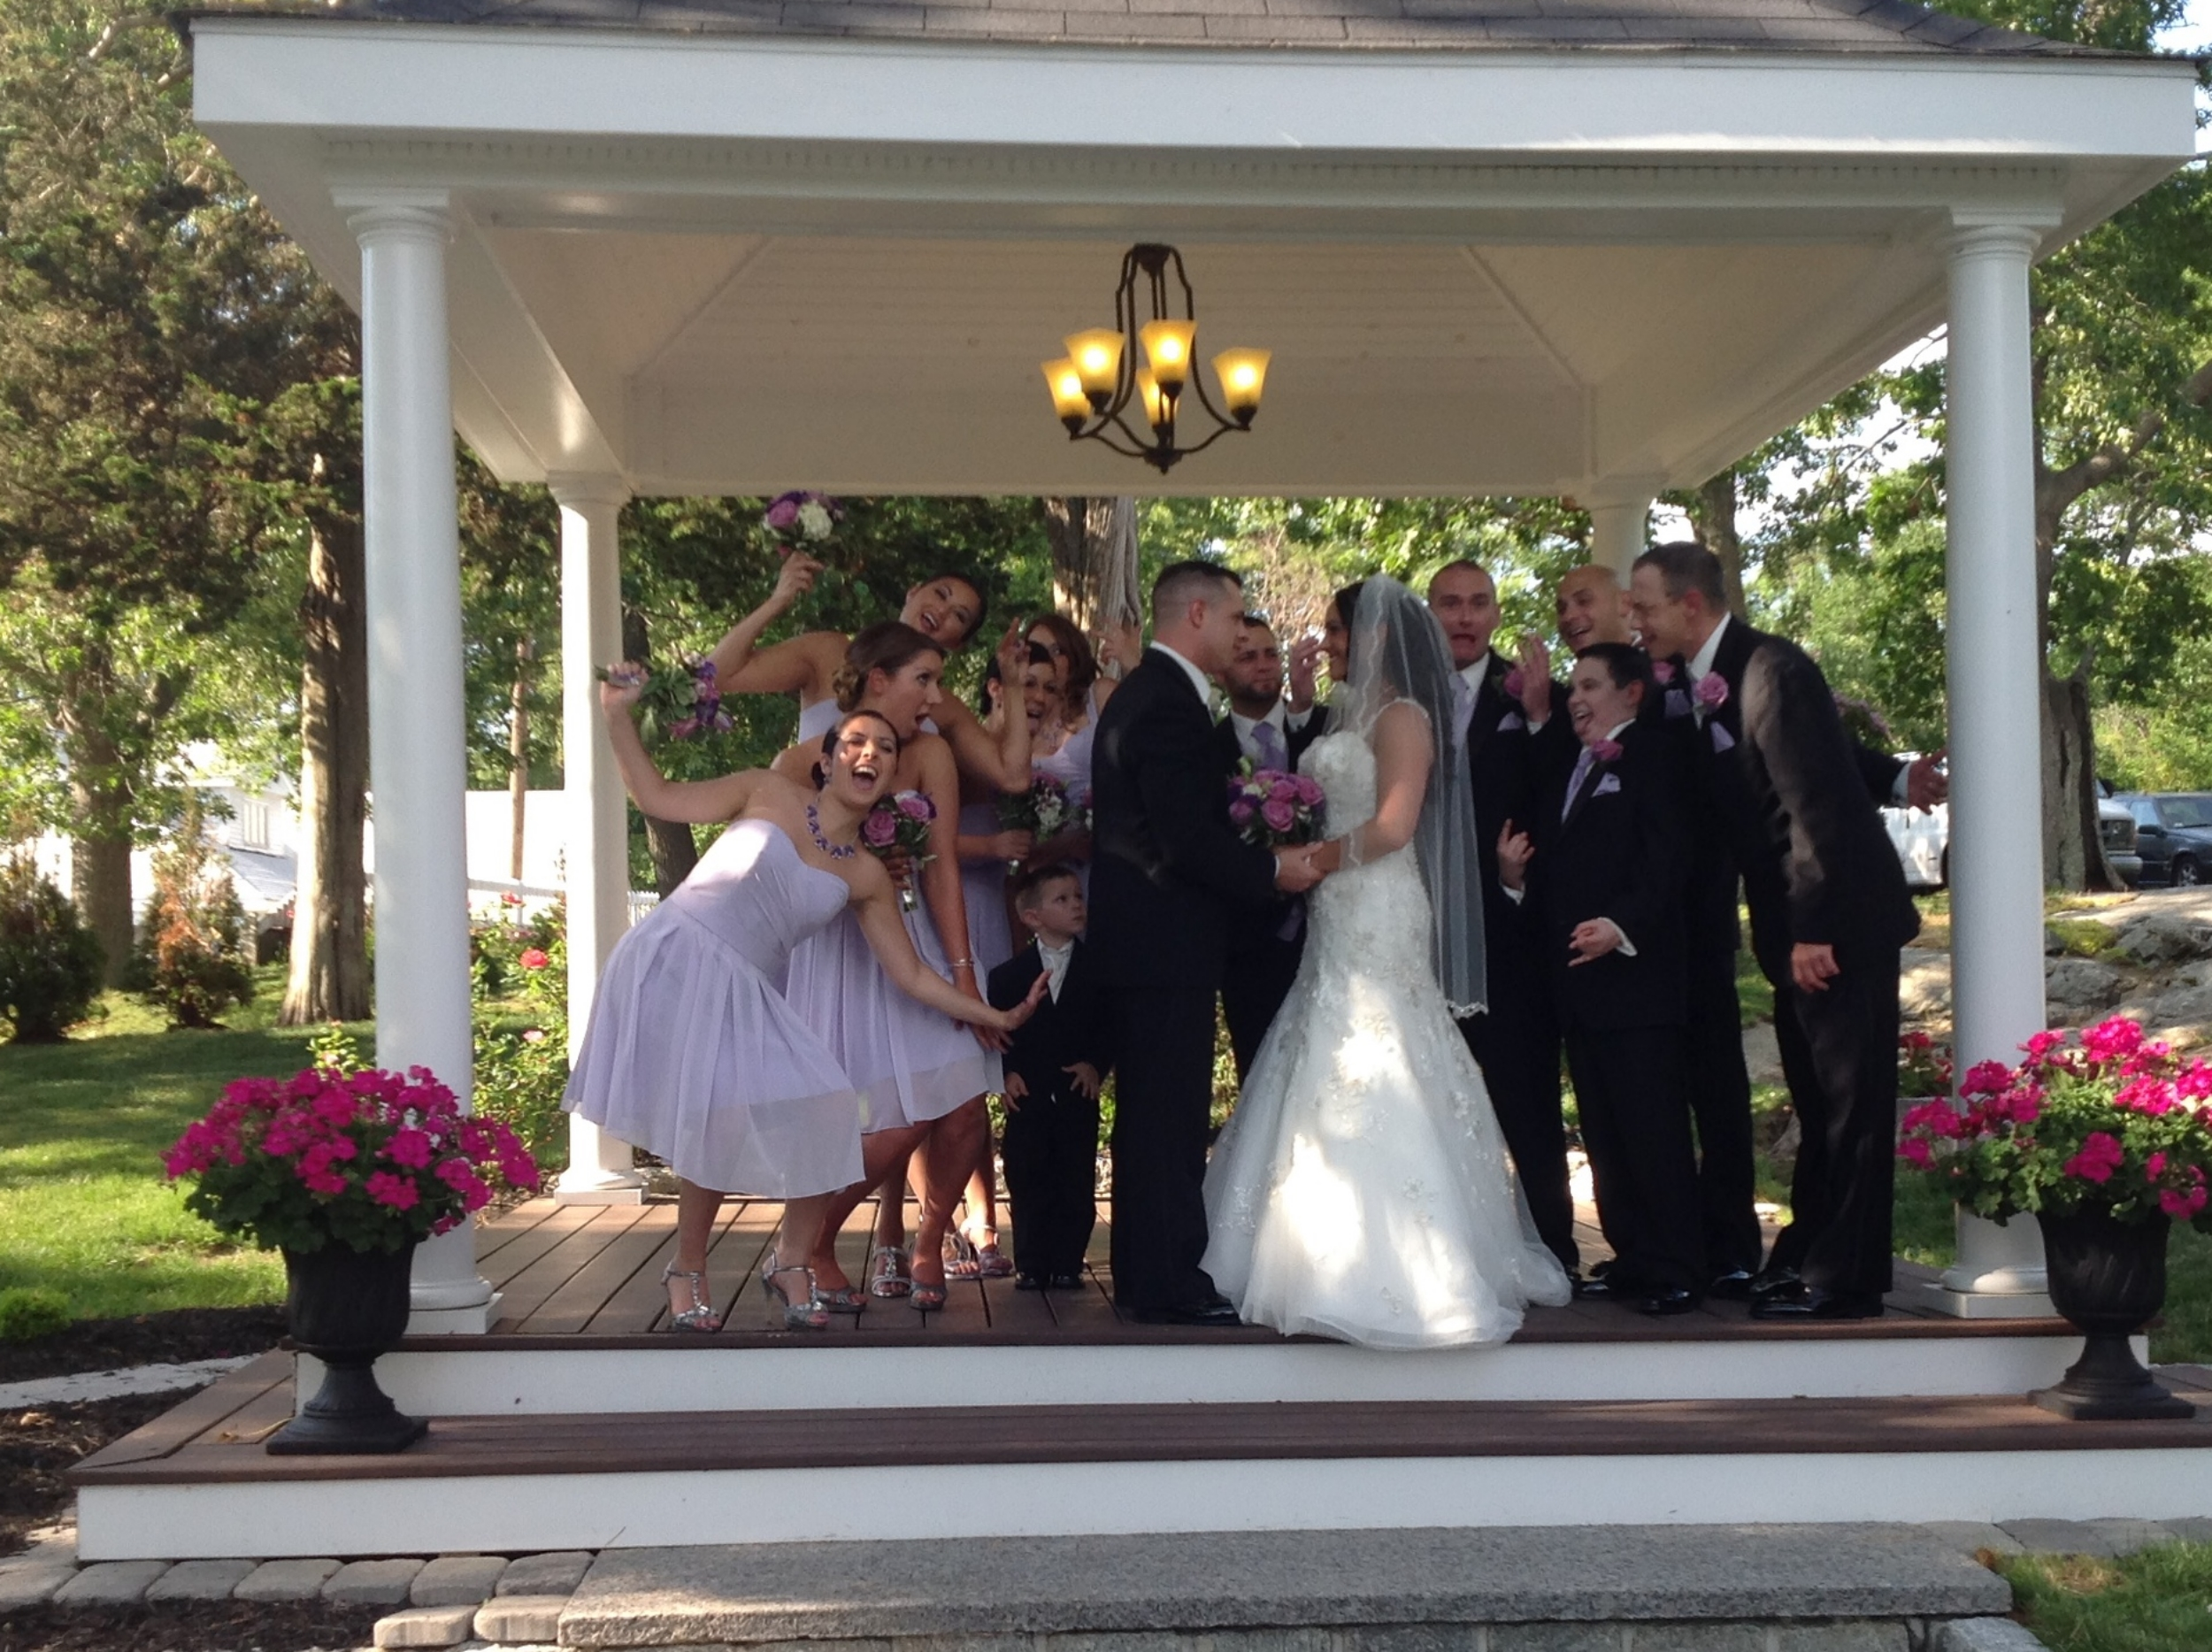 MA Wedding South Shore Massachusetts  Outside, Outdoor Ceremony, Close to Ocean  Fireplace. High ceilings, chandelier, gazebo, pavilion, Engagement, reception  Scituate, Cohasset, Hingham, Norwell, Marshfield, Rockland